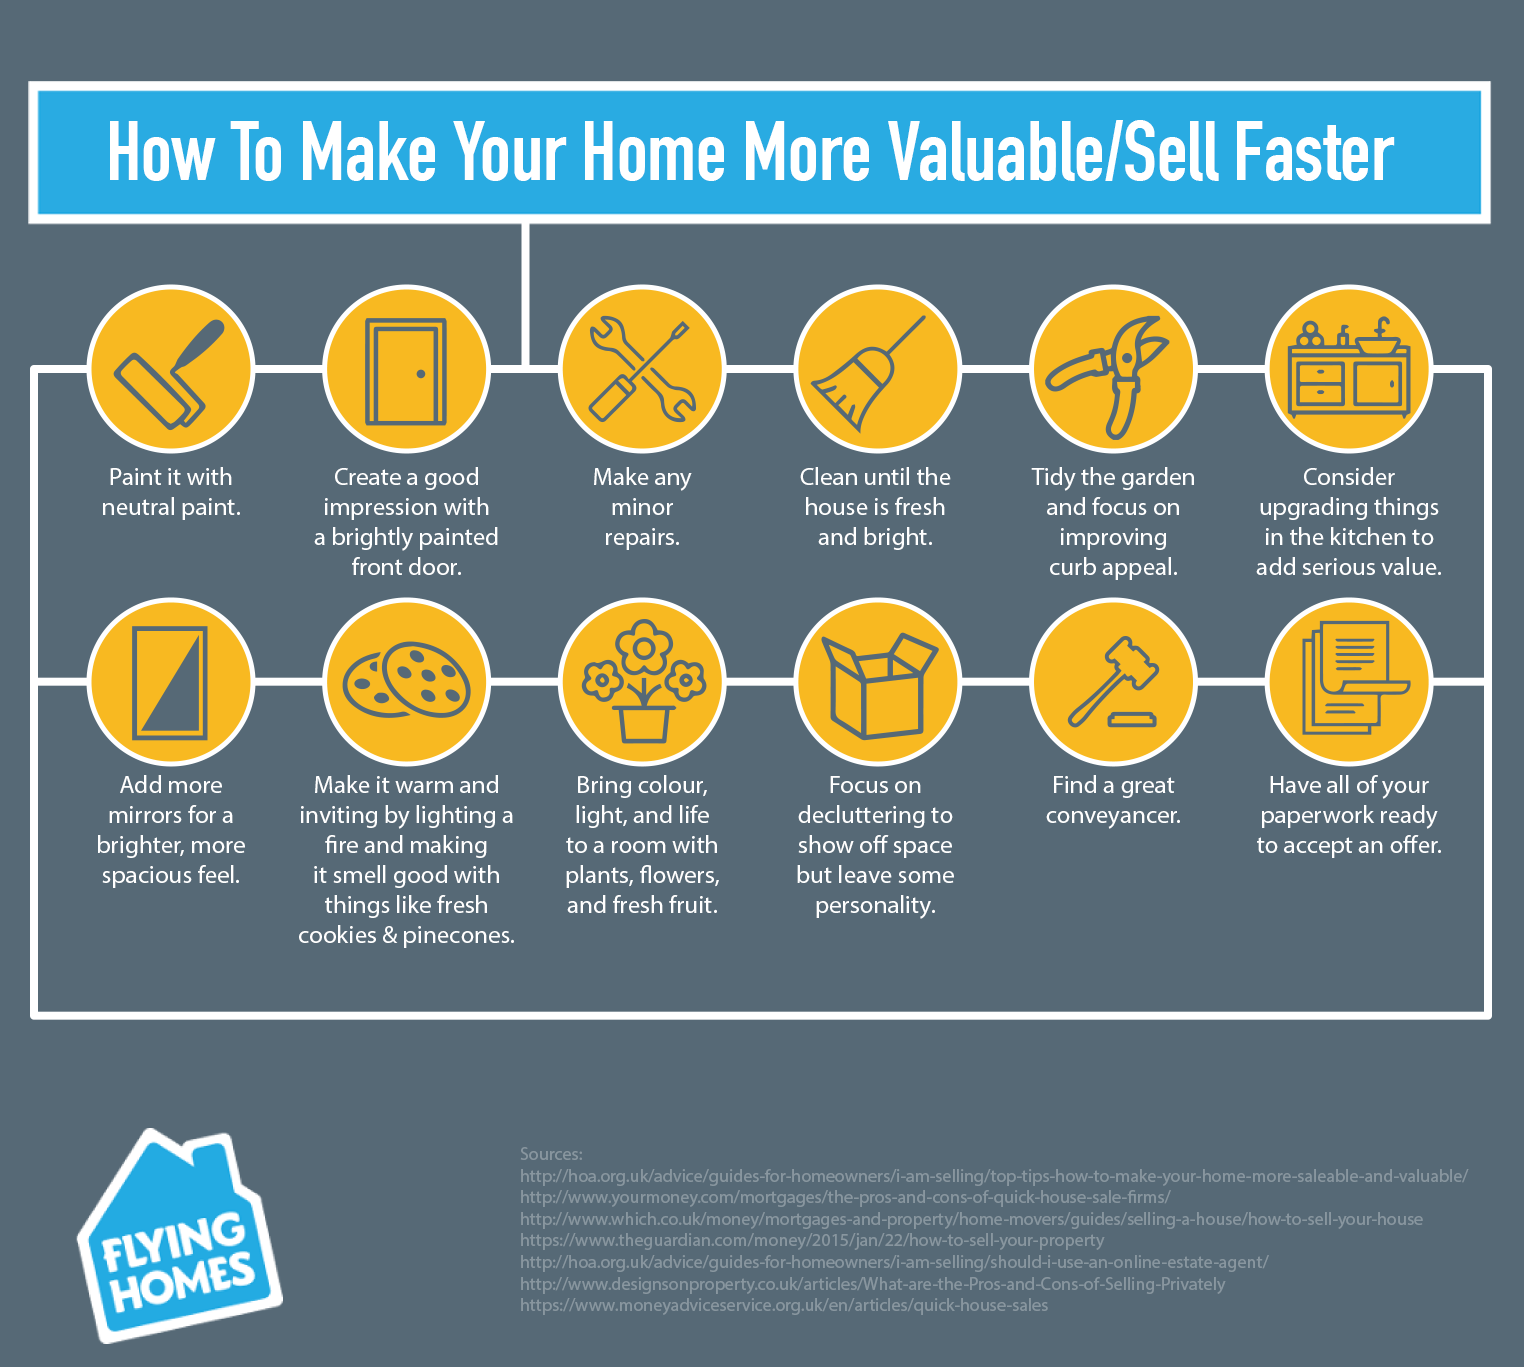 12 Great Tips For Selling Your House Faster!